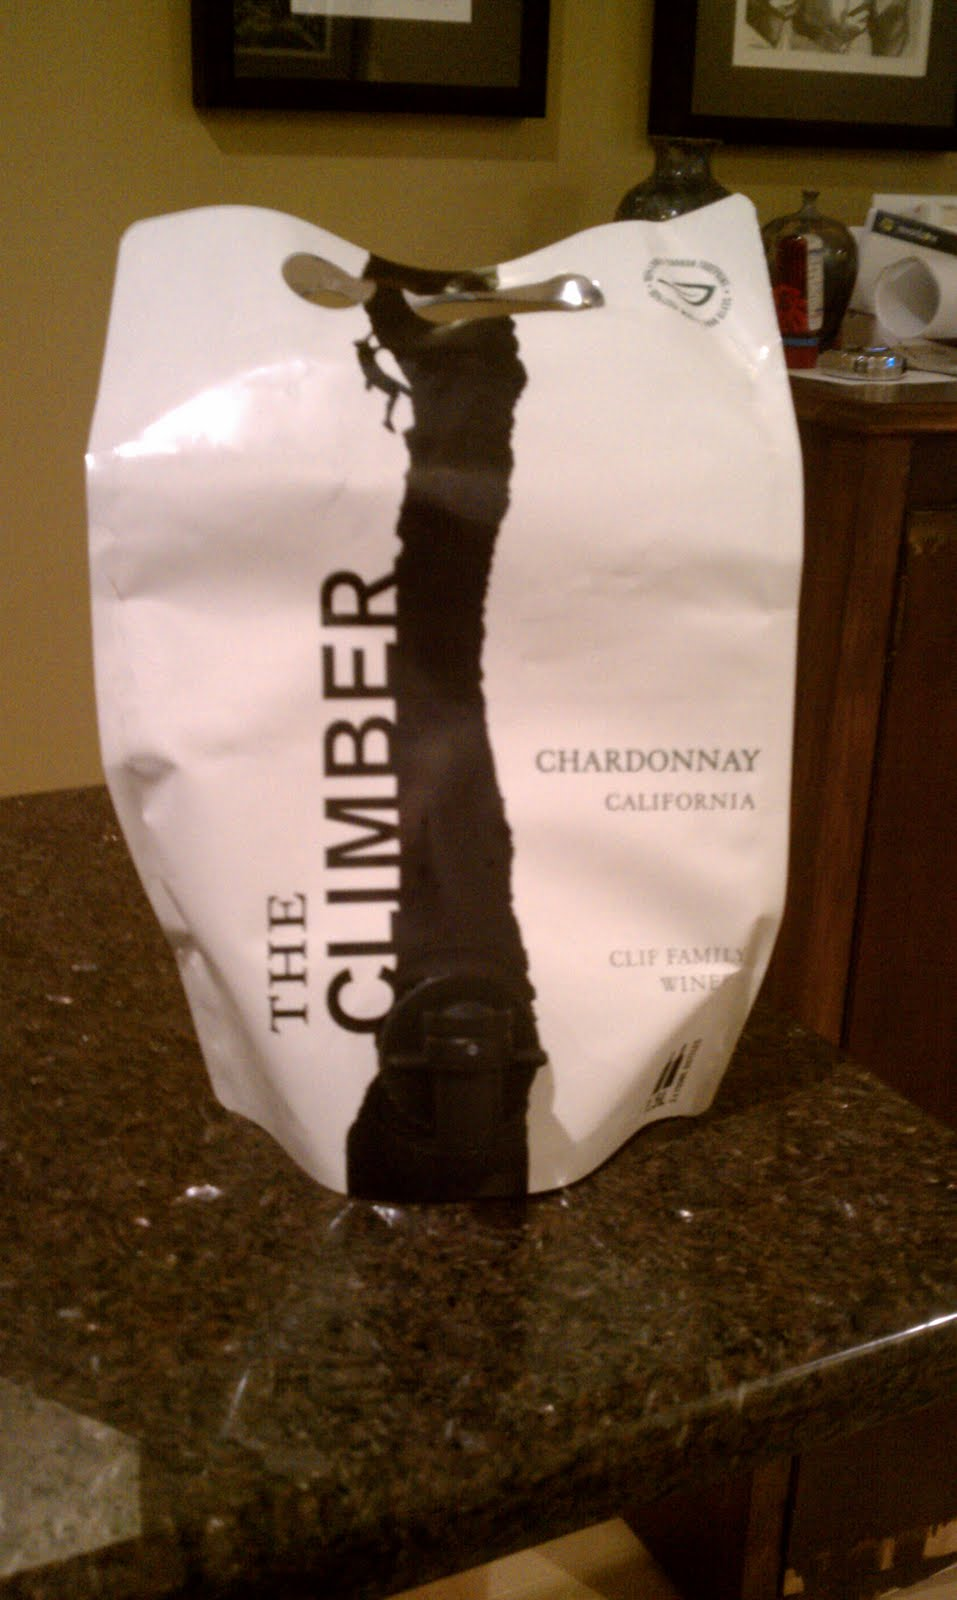 Climber Chardonnay from Clif Winery